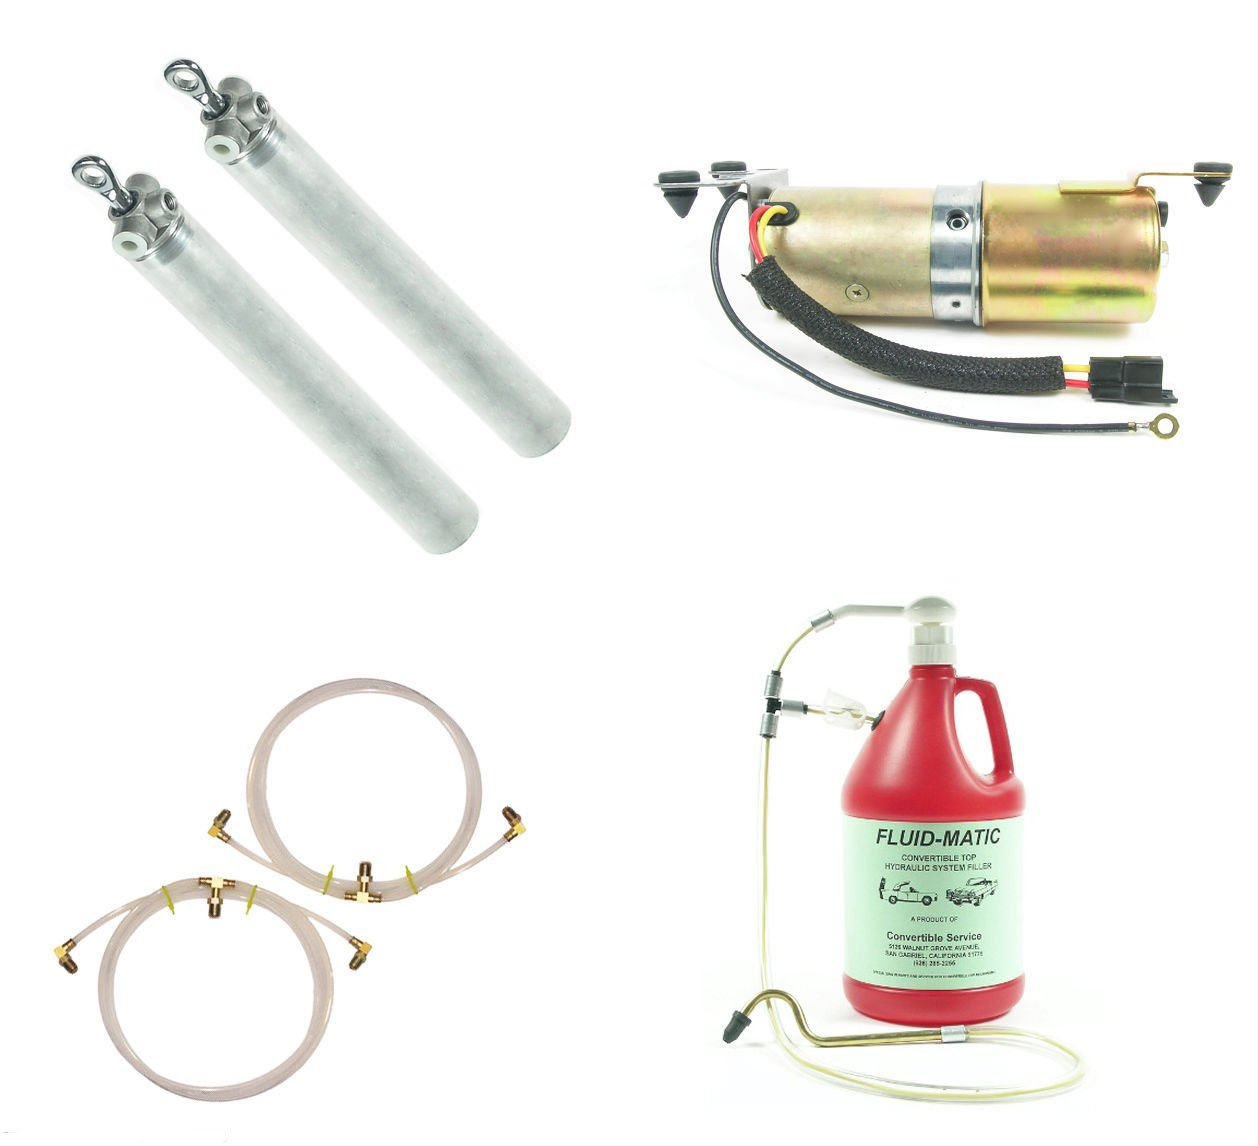 Convertible Top Hydraulic System Cylinders Hoses & Motor. FITS ALL 65-70 GM Full Size Chevrolet Pontiac Olds Buick Cadillac 1965 1966 1967 1968 1969 1970